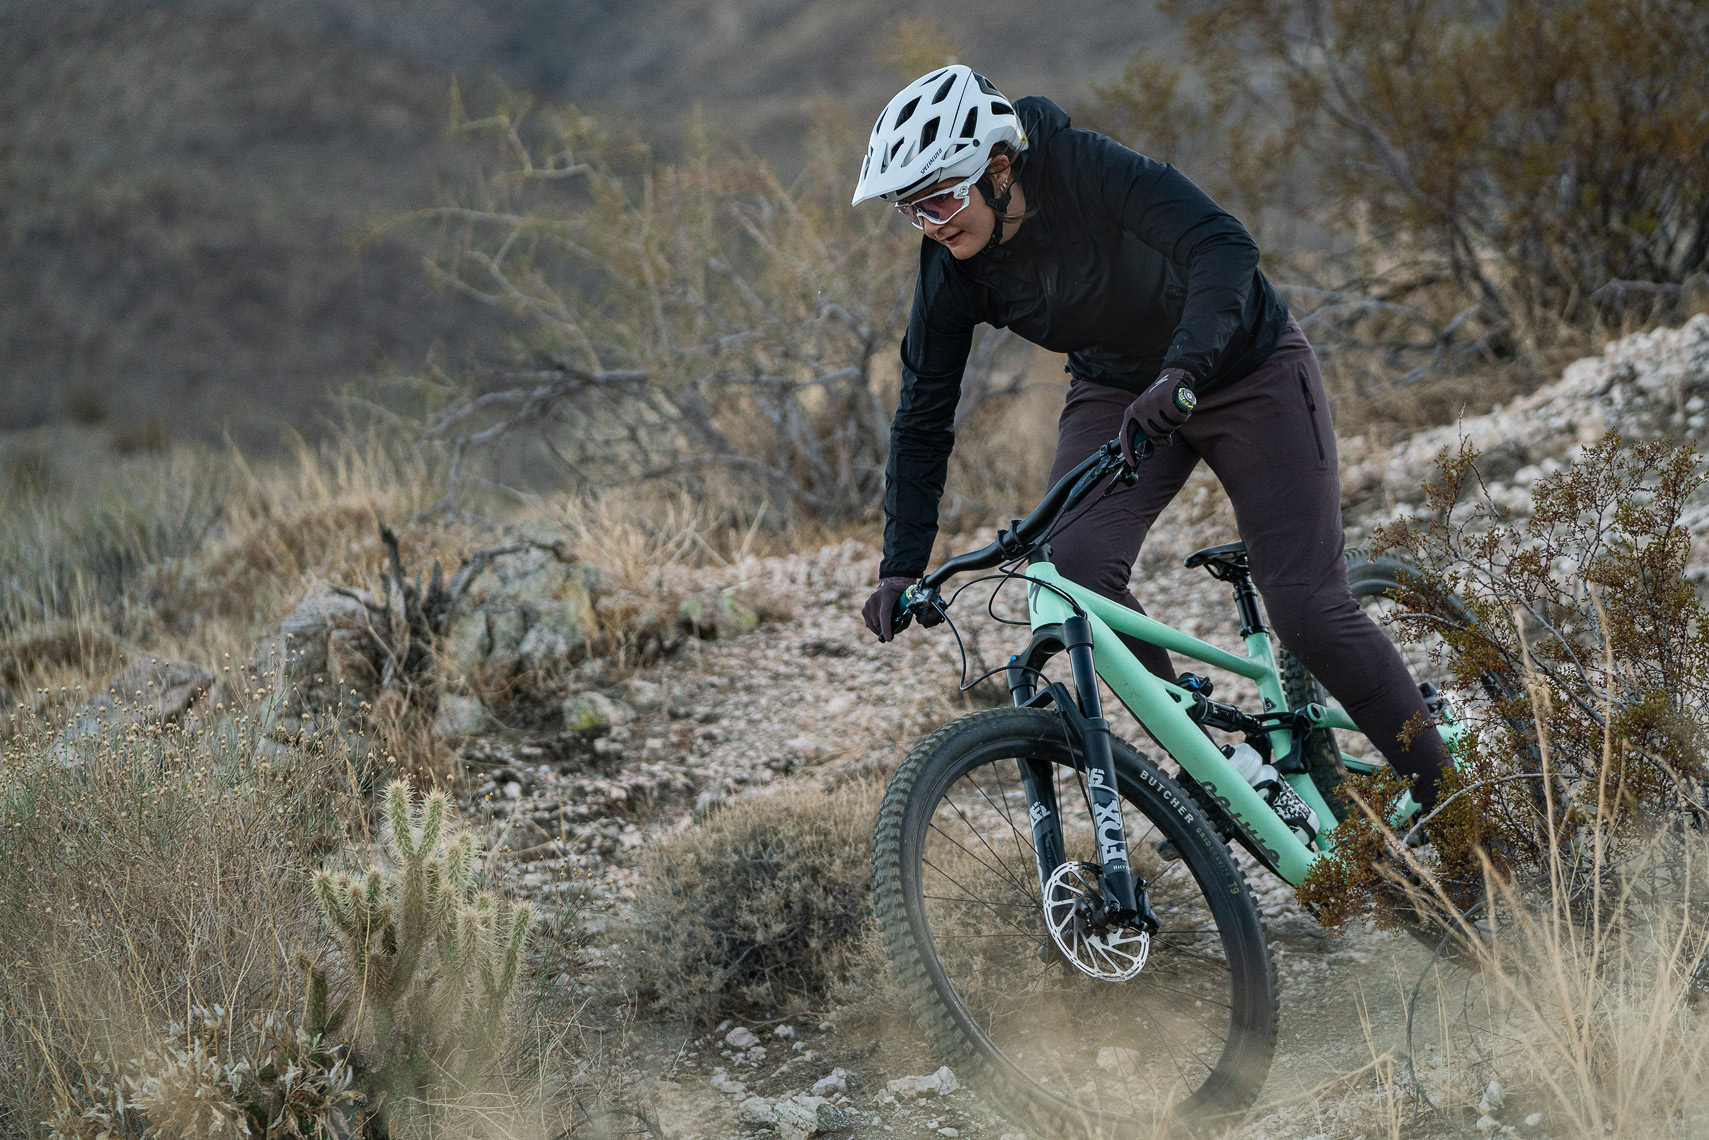 Specialized_S21_MTB_Clothing_Palm_Springs_VanWeelden-349